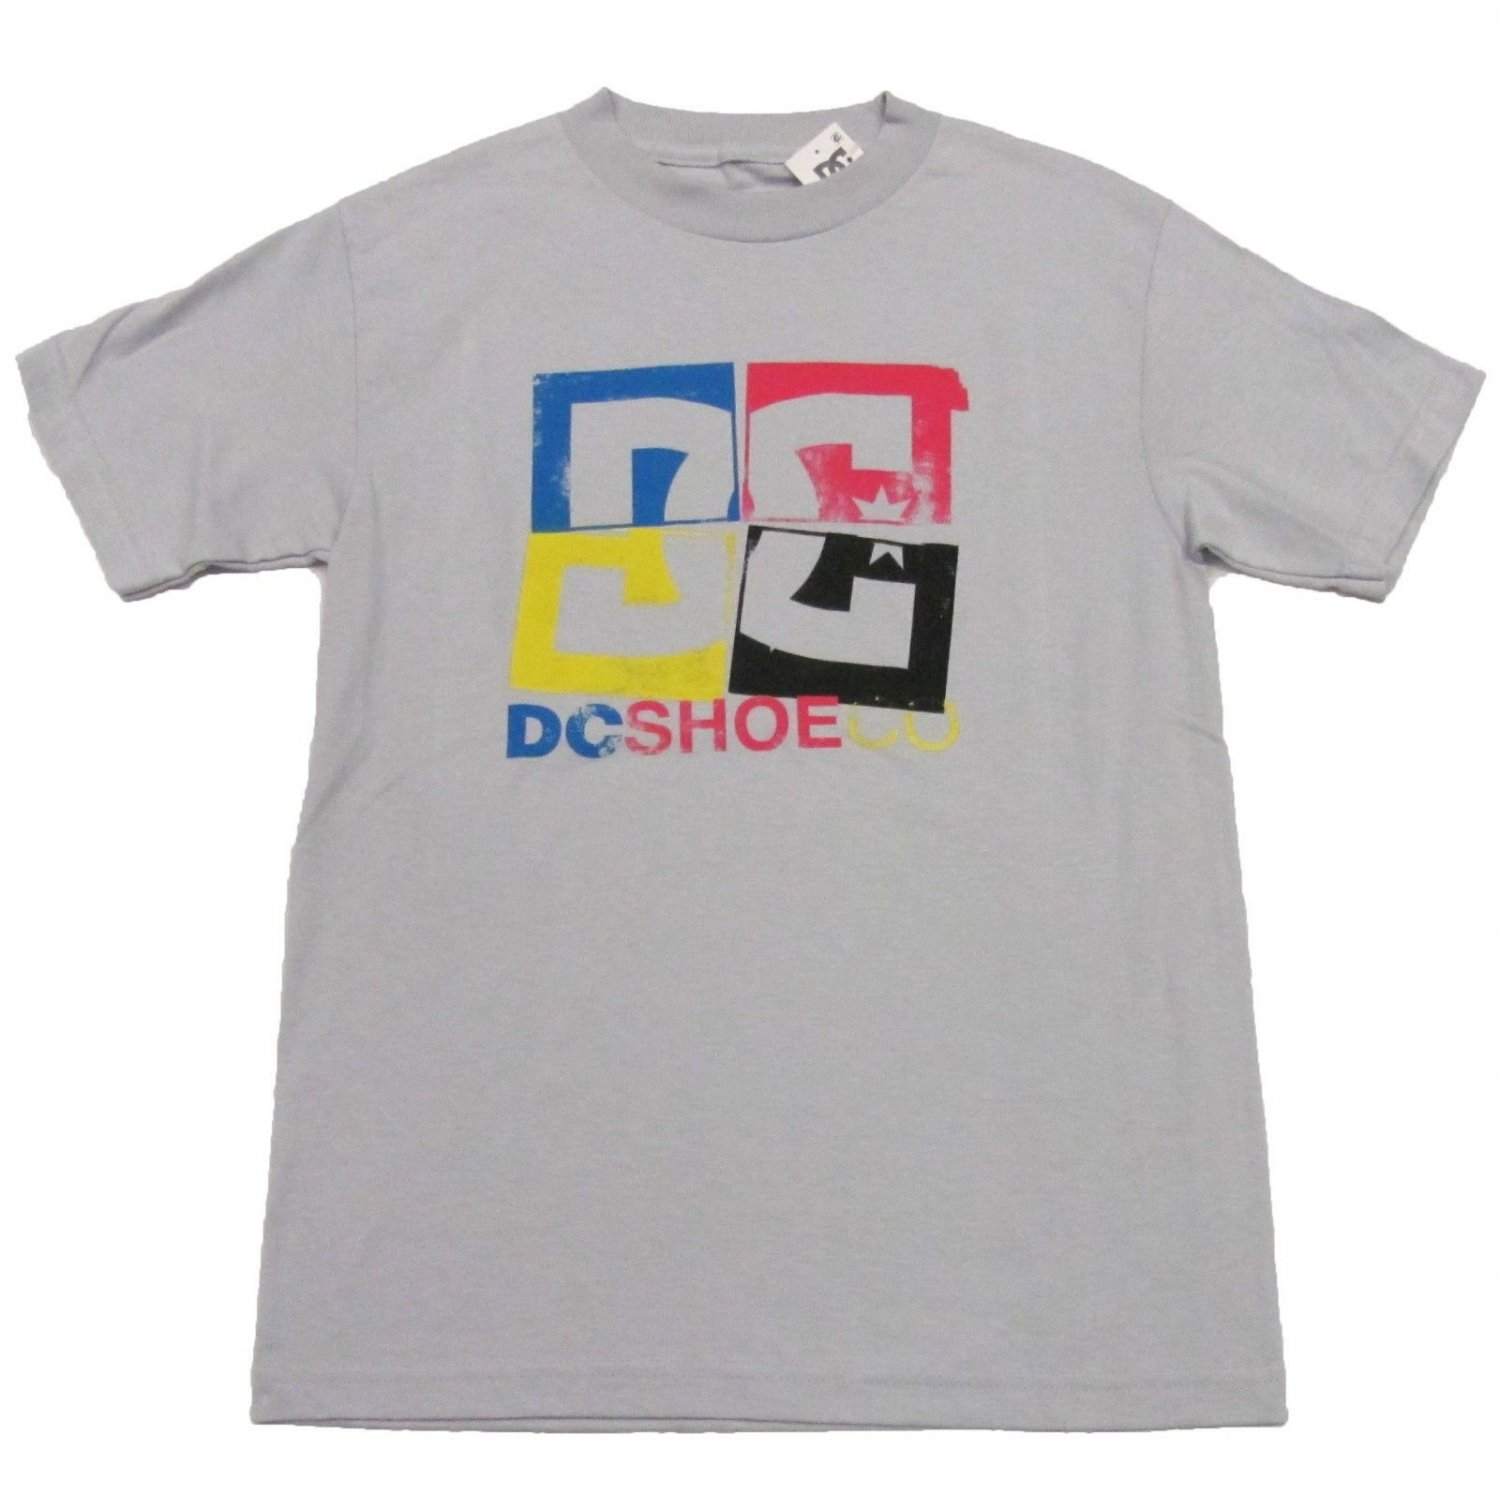 Dc Shoes Mens S cmyk Tee Shirt Light Gray Small T-shirt New